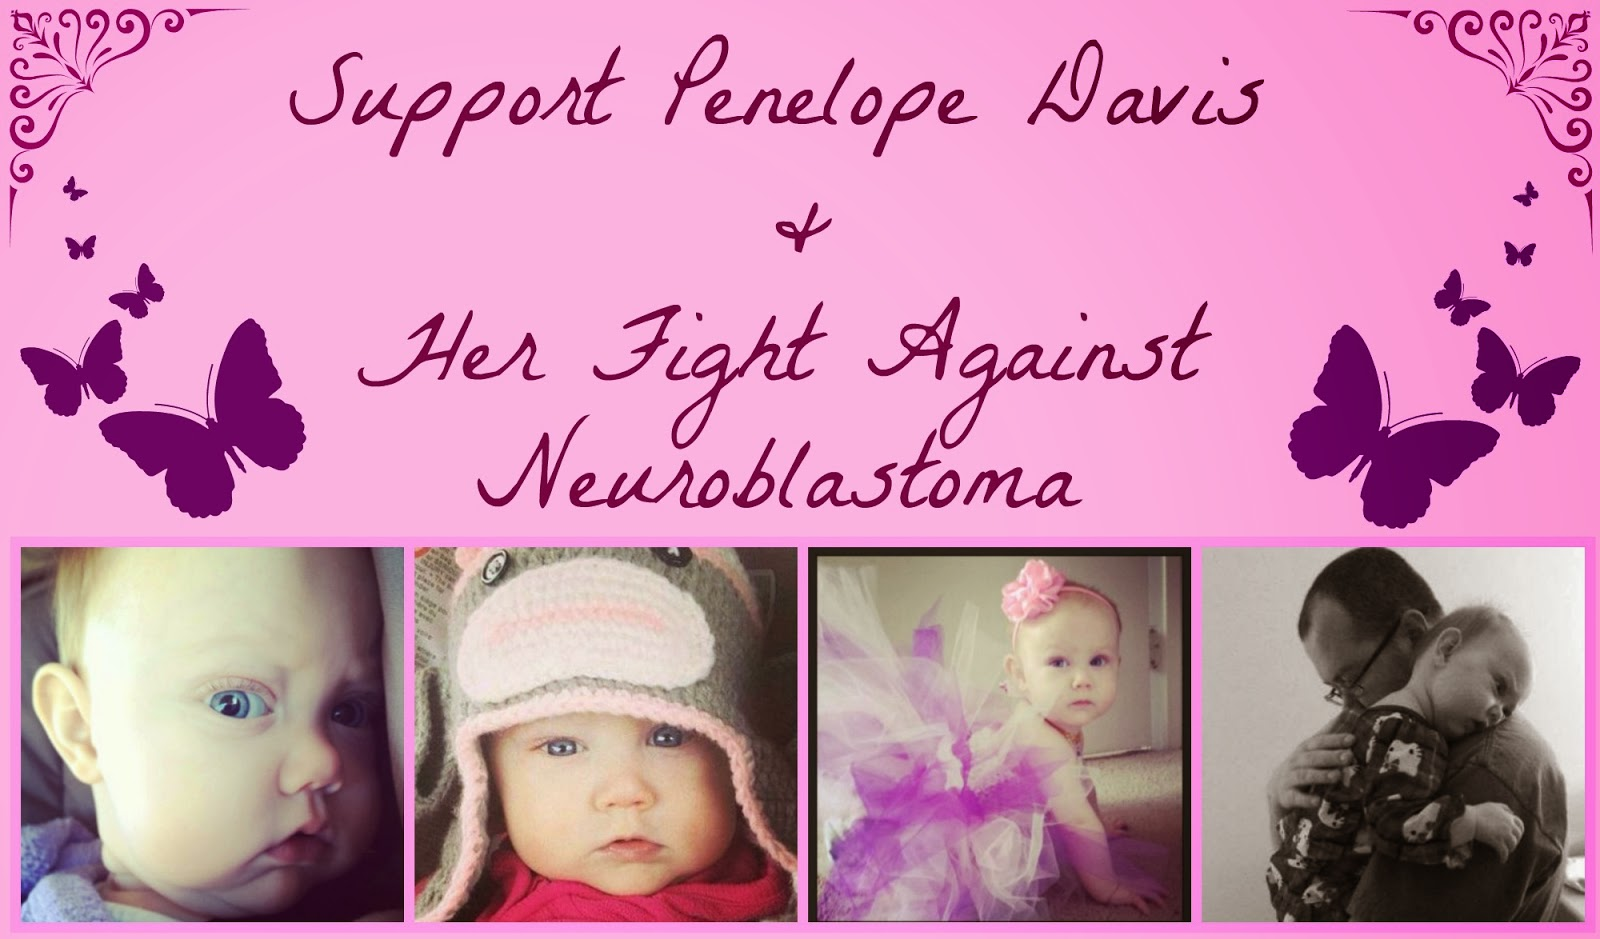 https://www.giveforward.com/fundraiser/gsw3/penelope-davis-neuroblastoma-fund?utm_source=facebook&utm_medium=fb_share_stream.share&utm_campaign=BA_FBshare&og_action=hug&t=3&fb_ref=1819452